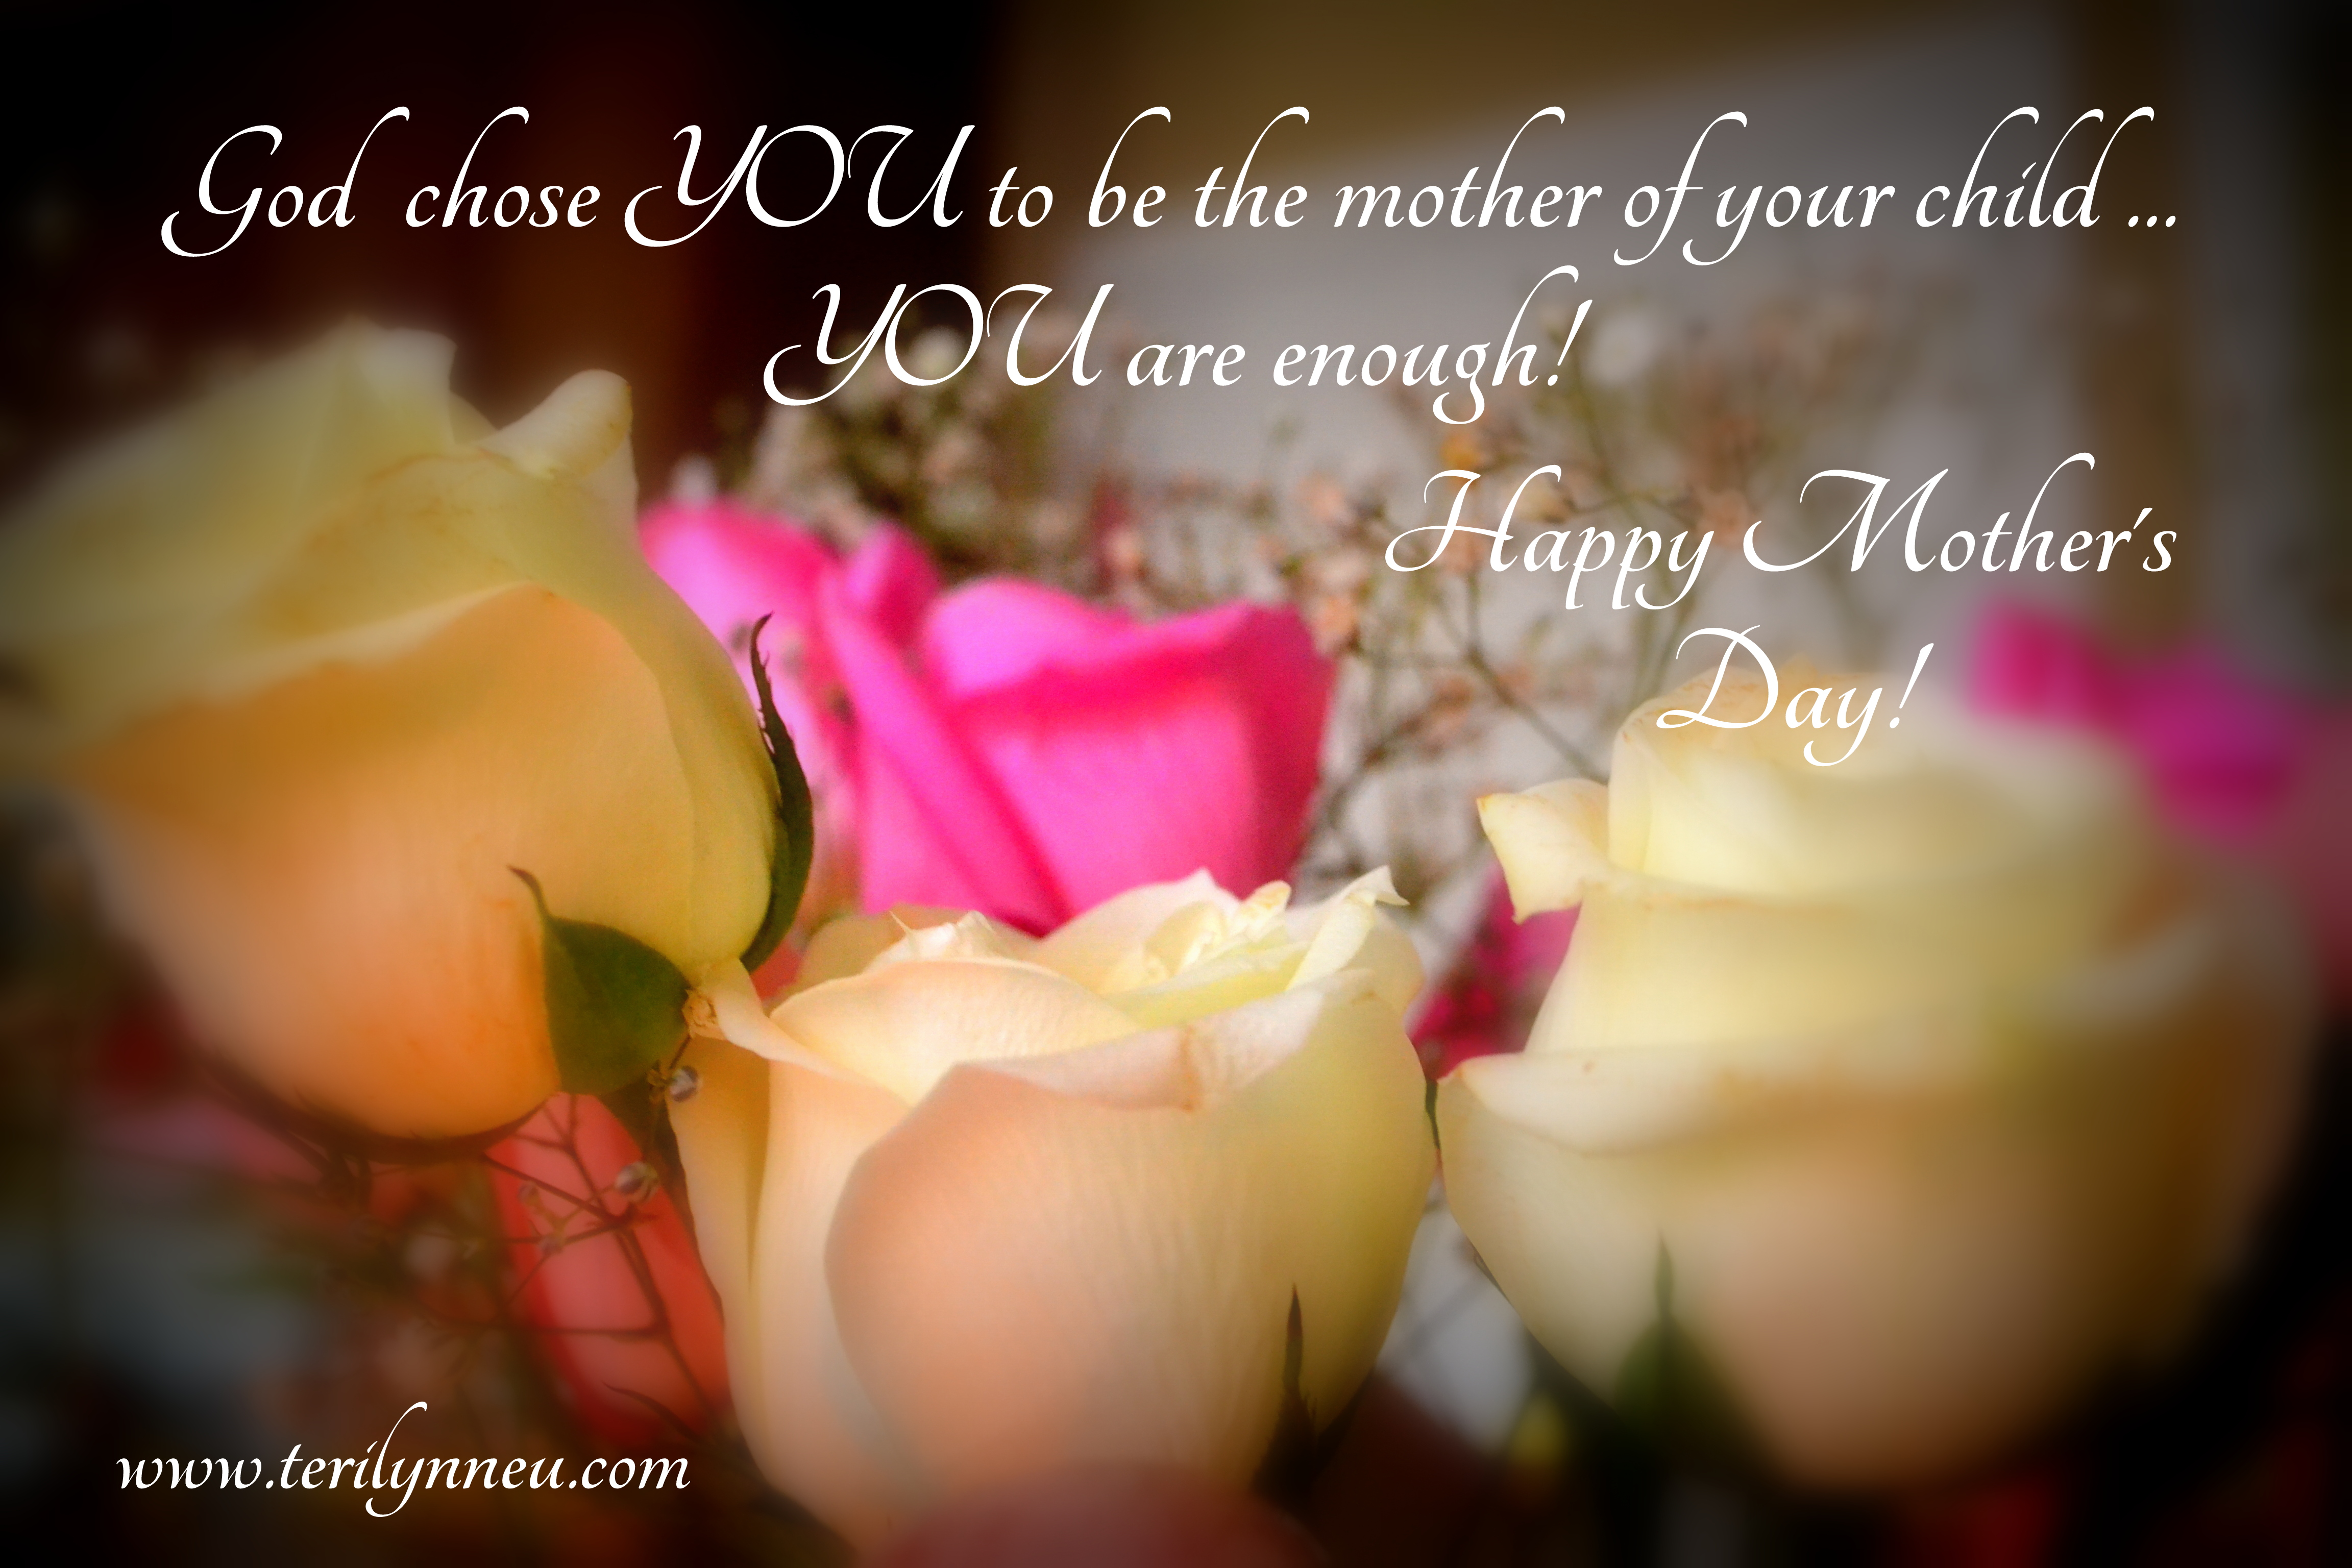 Happy Mothers Day Images Latest News Images And Photos